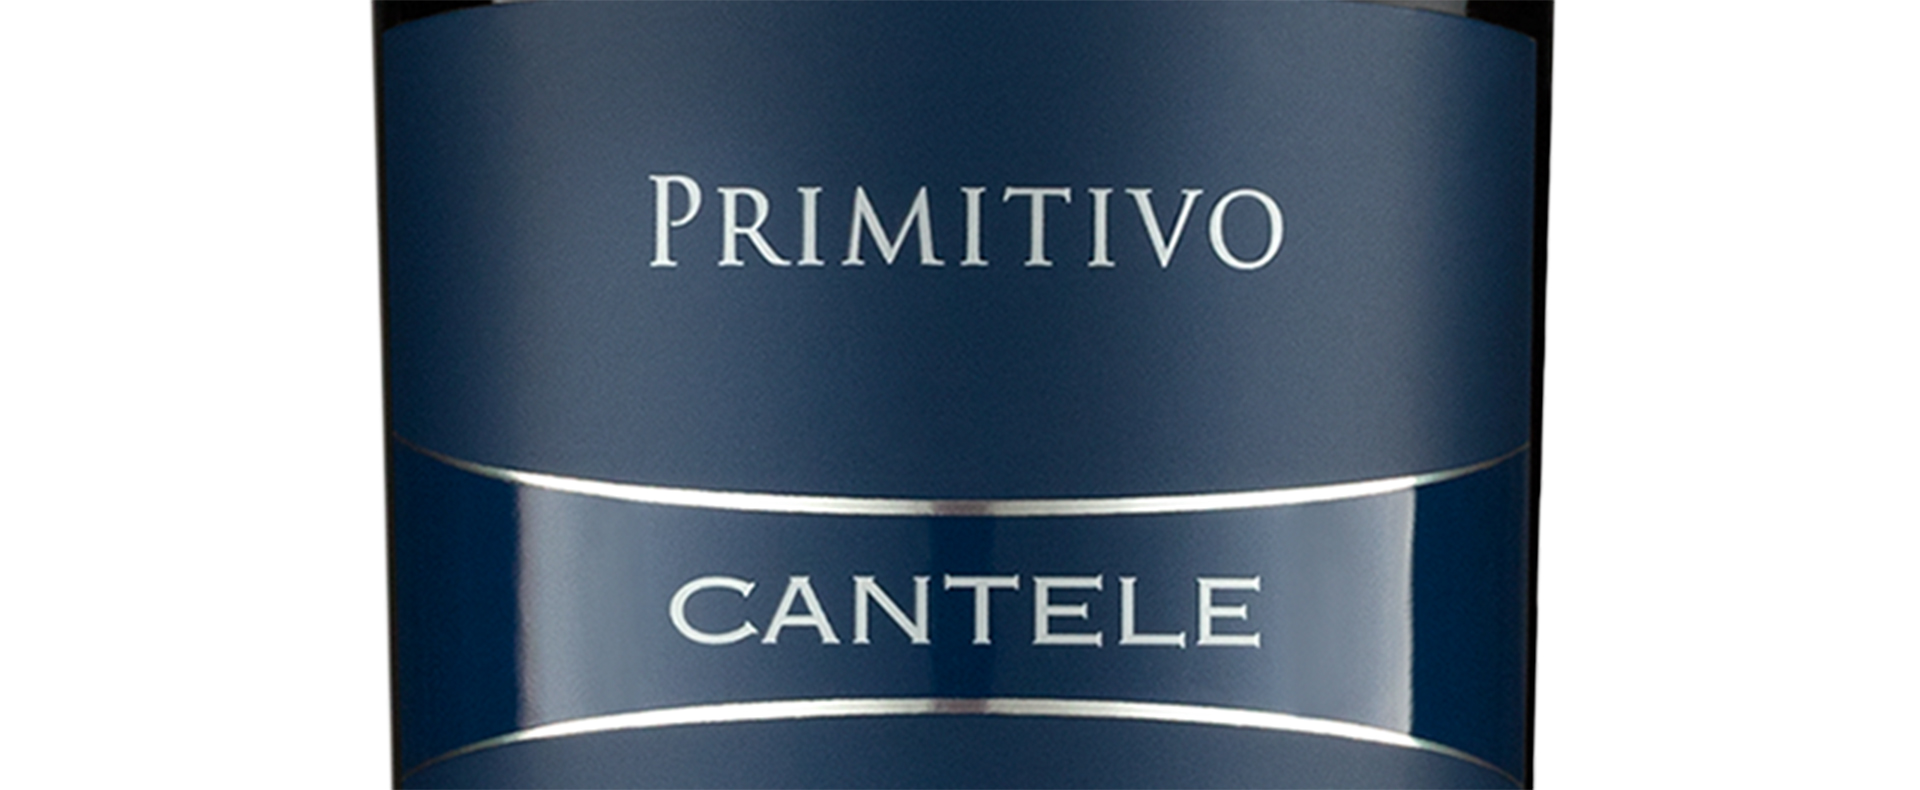 Primitivo: The meaning of the grape name